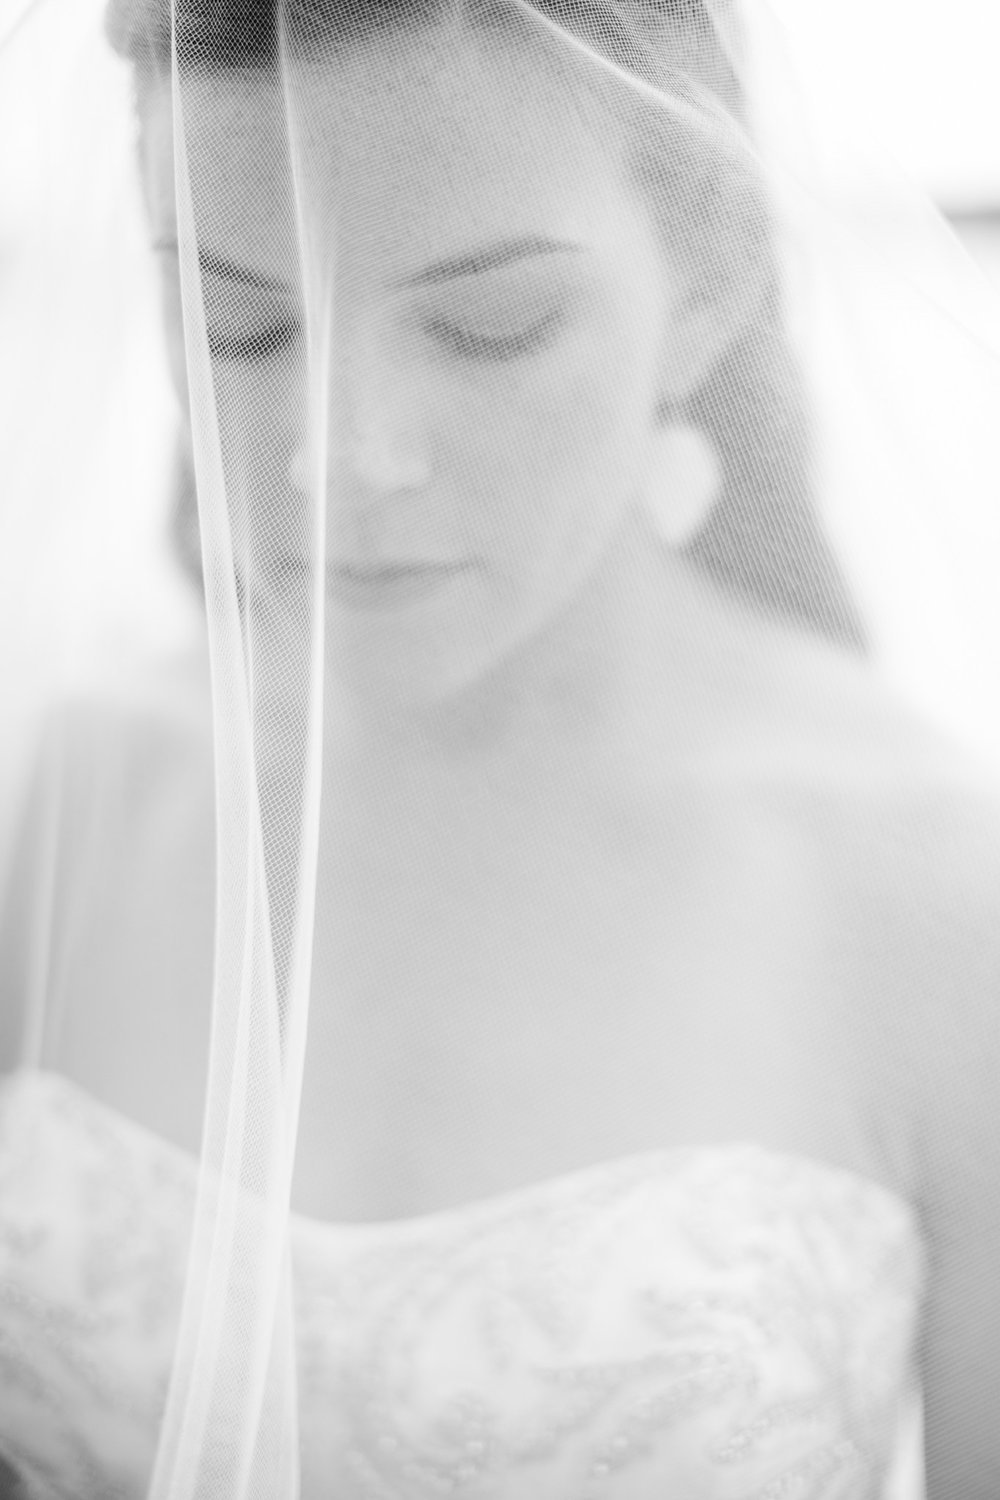 north_shore_wedding_photography_deborah_zoe_00021.JPG